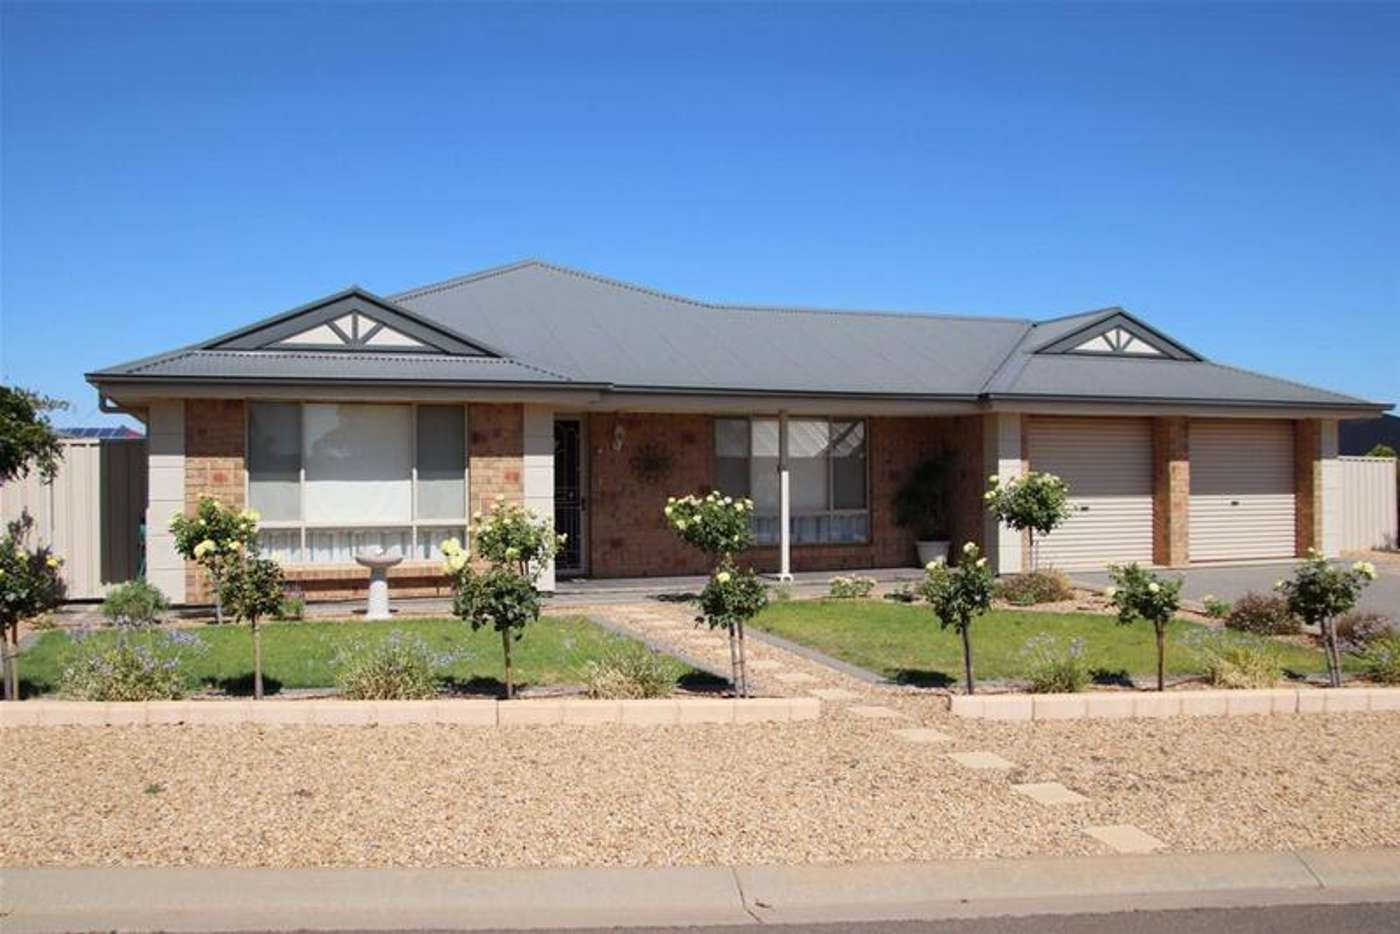 Main view of Homely house listing, 4 Paddlesteamer Way, Mannum SA 5238